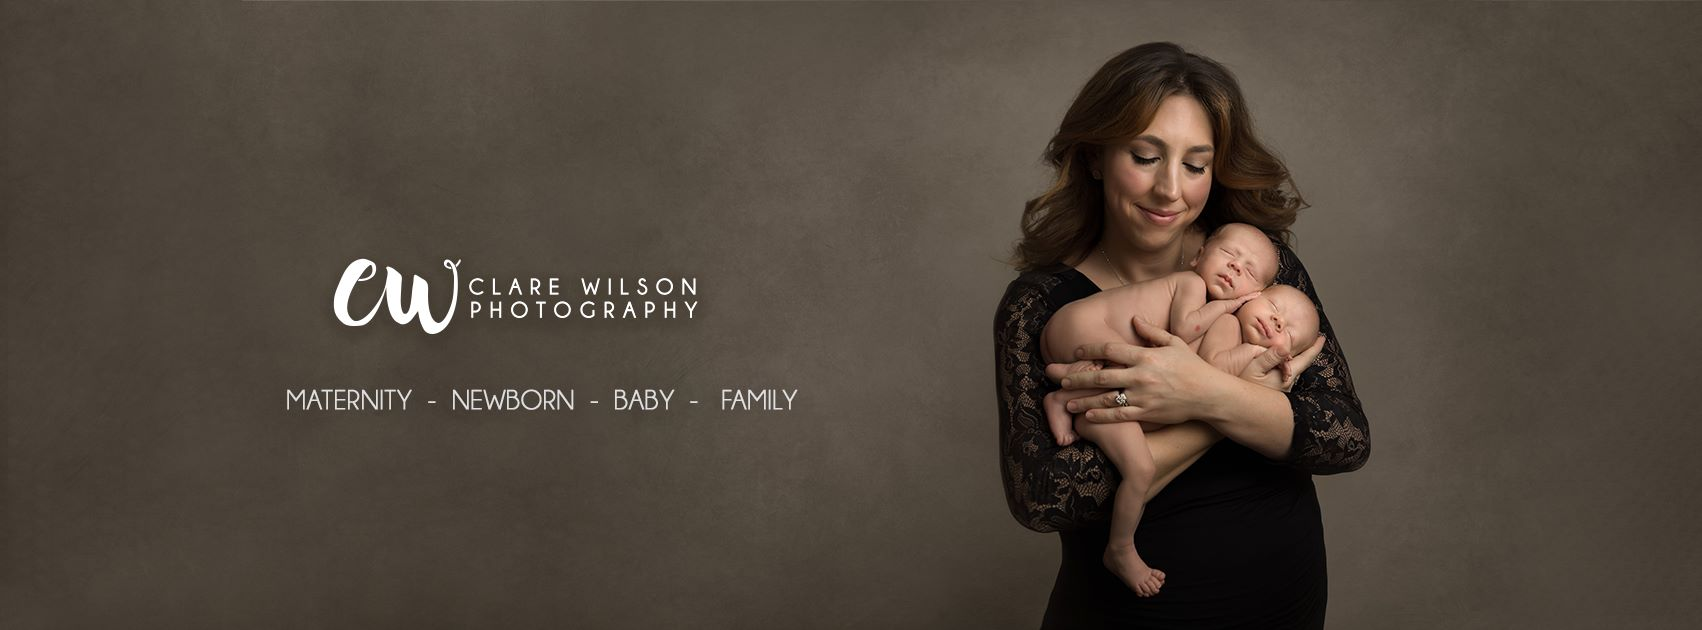 Banner Image Clare Wilson Photography